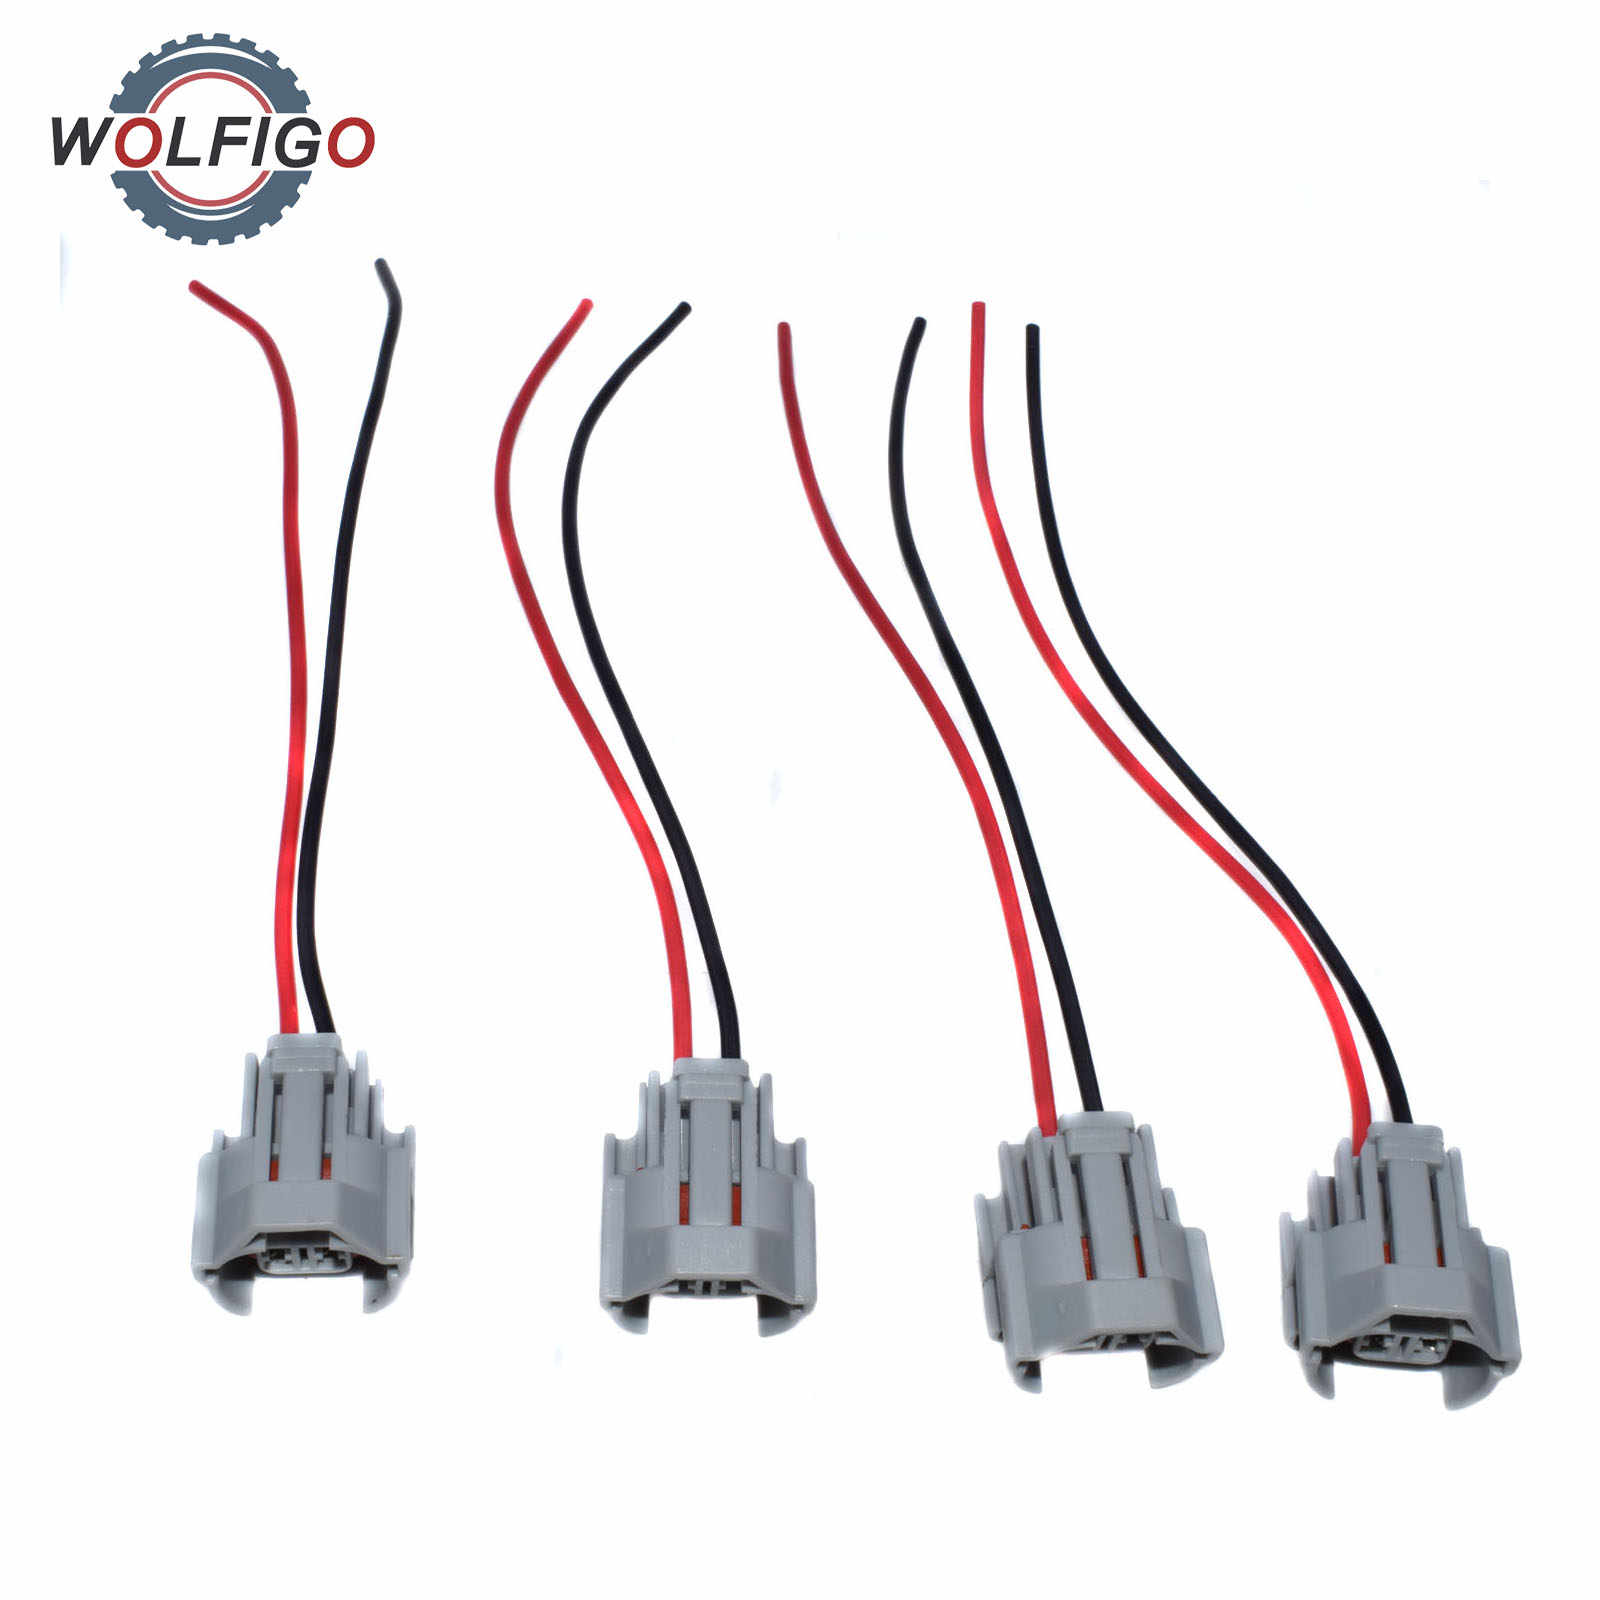 [DIAGRAM_34OR]  WOLFIGO New Fuel Injector Connector Pigtail Plug Wire Harness Wiring For  DENSO FIC2150| | - AliExpress | Denso Wiring Harness |  | www.aliexpress.com